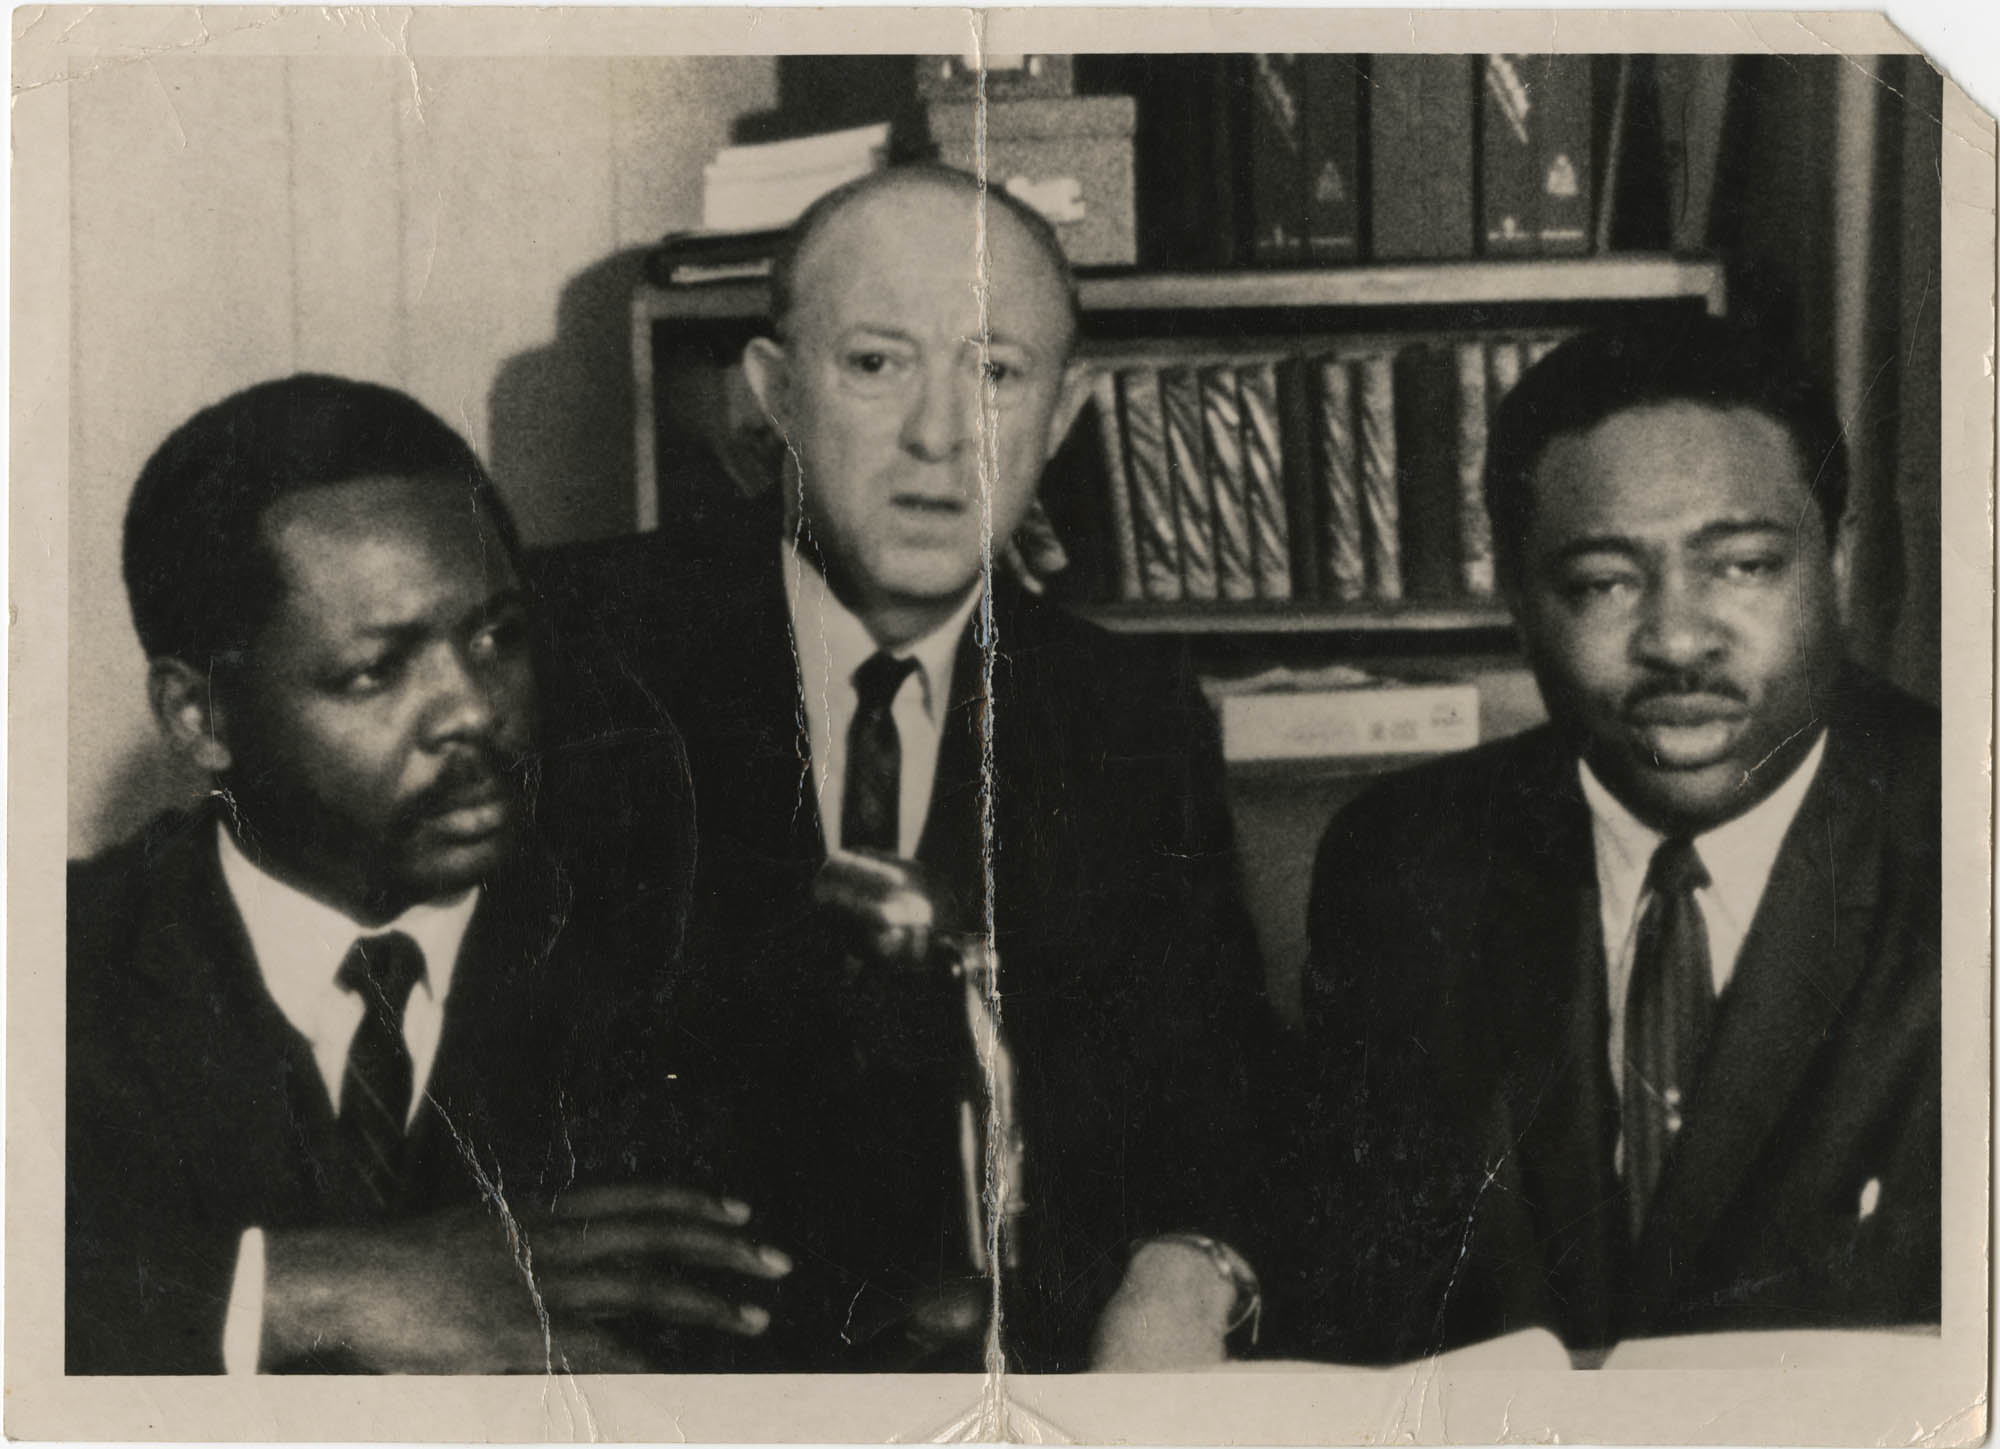 Photograph of Isaiah Bennett and Others